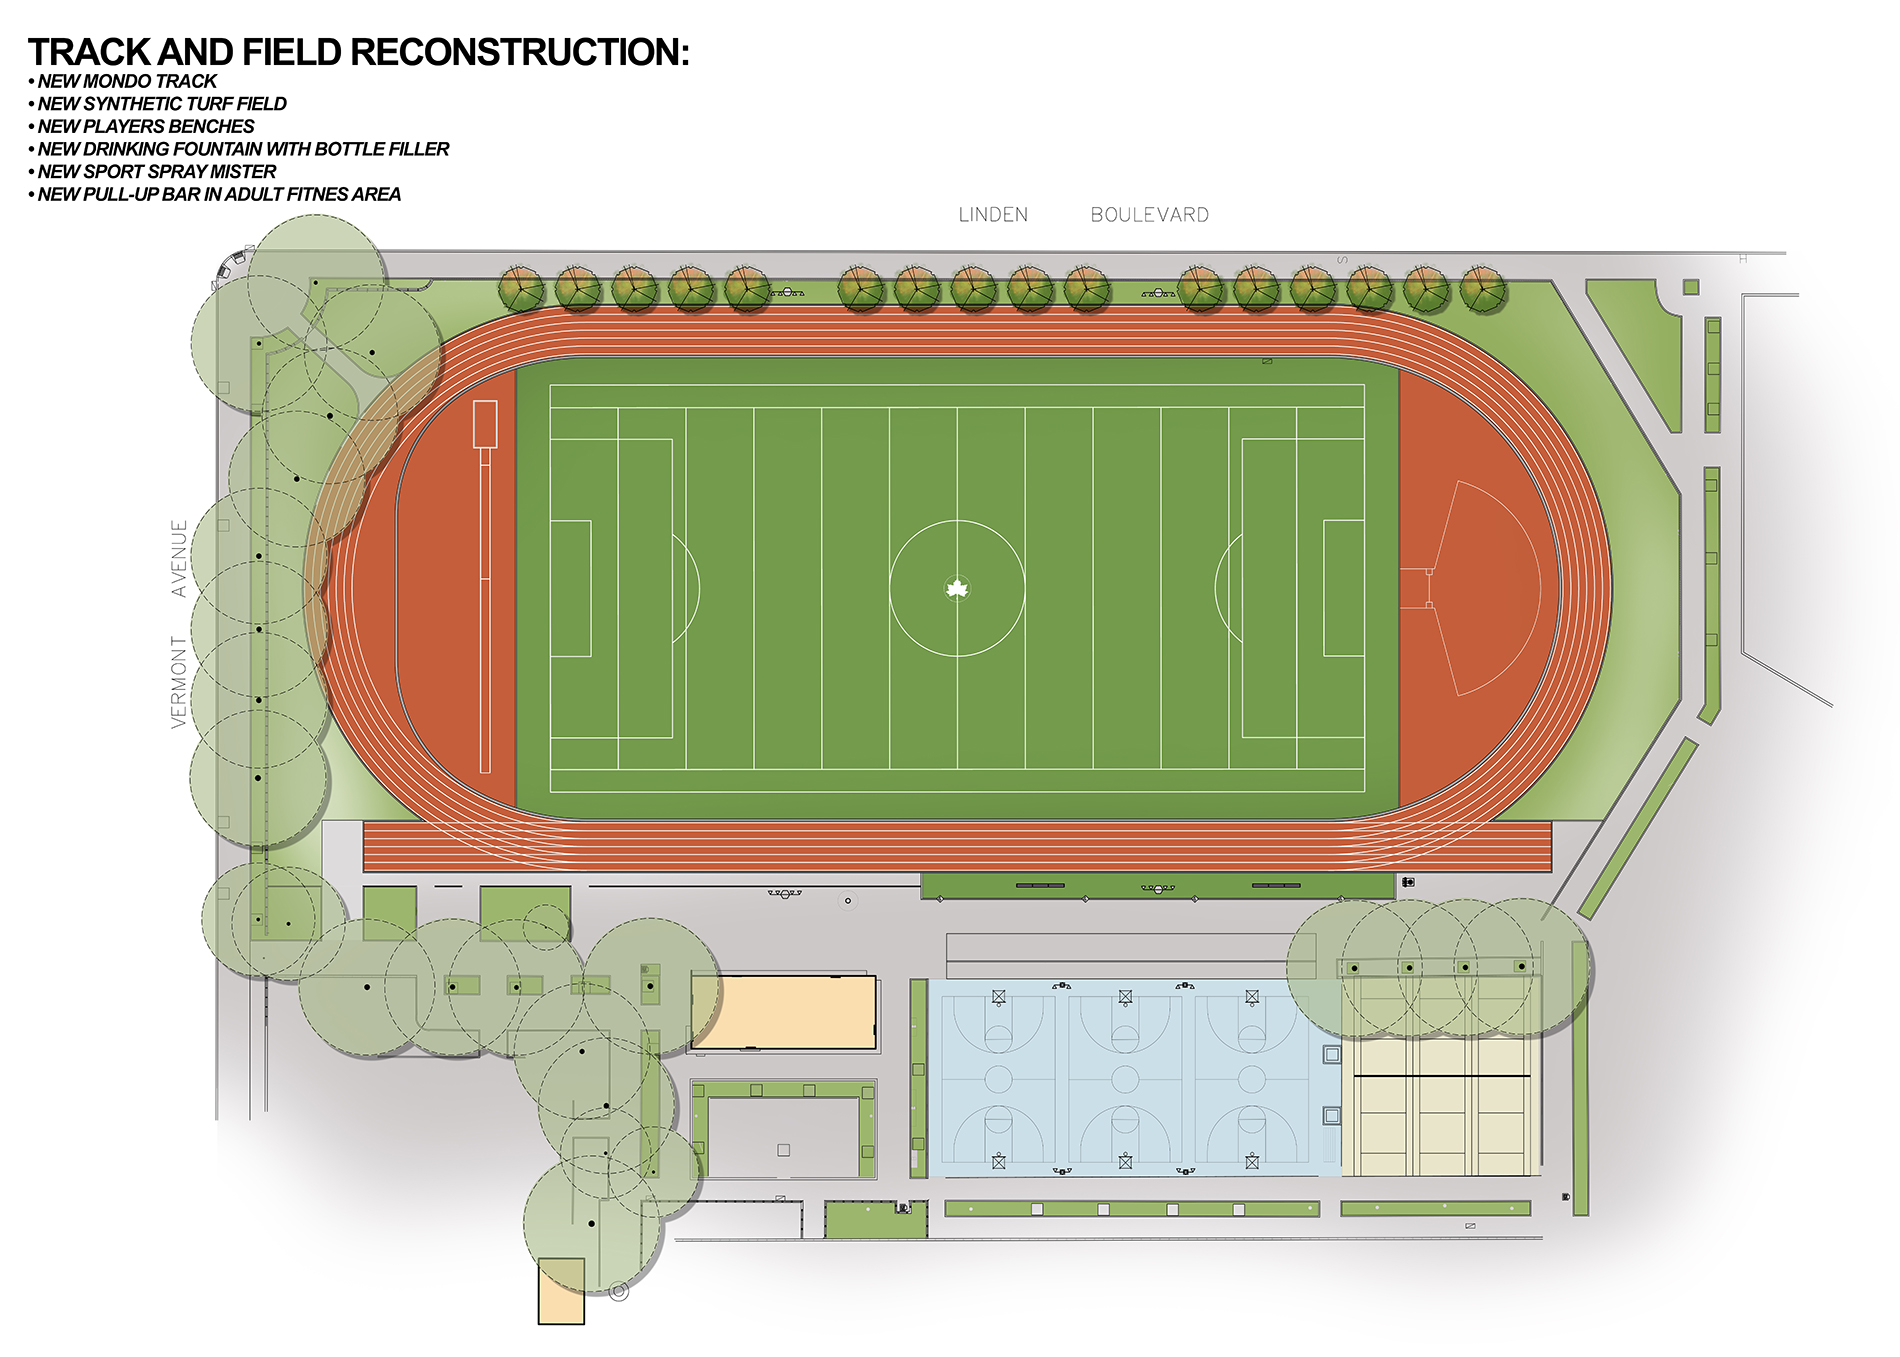 Design of Linden Park Synthetic Turf Field and Rubberized Track Reconstruction